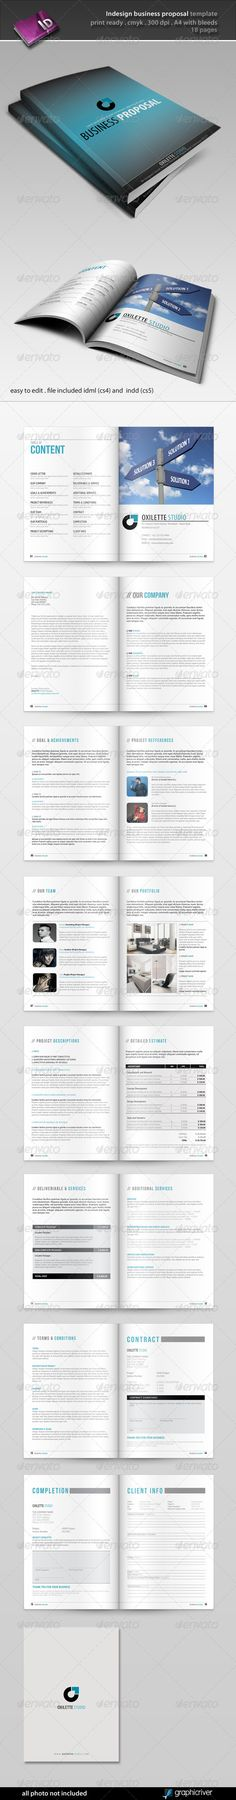 Proposal Creative, Adobe and Project proposal - price proposal template